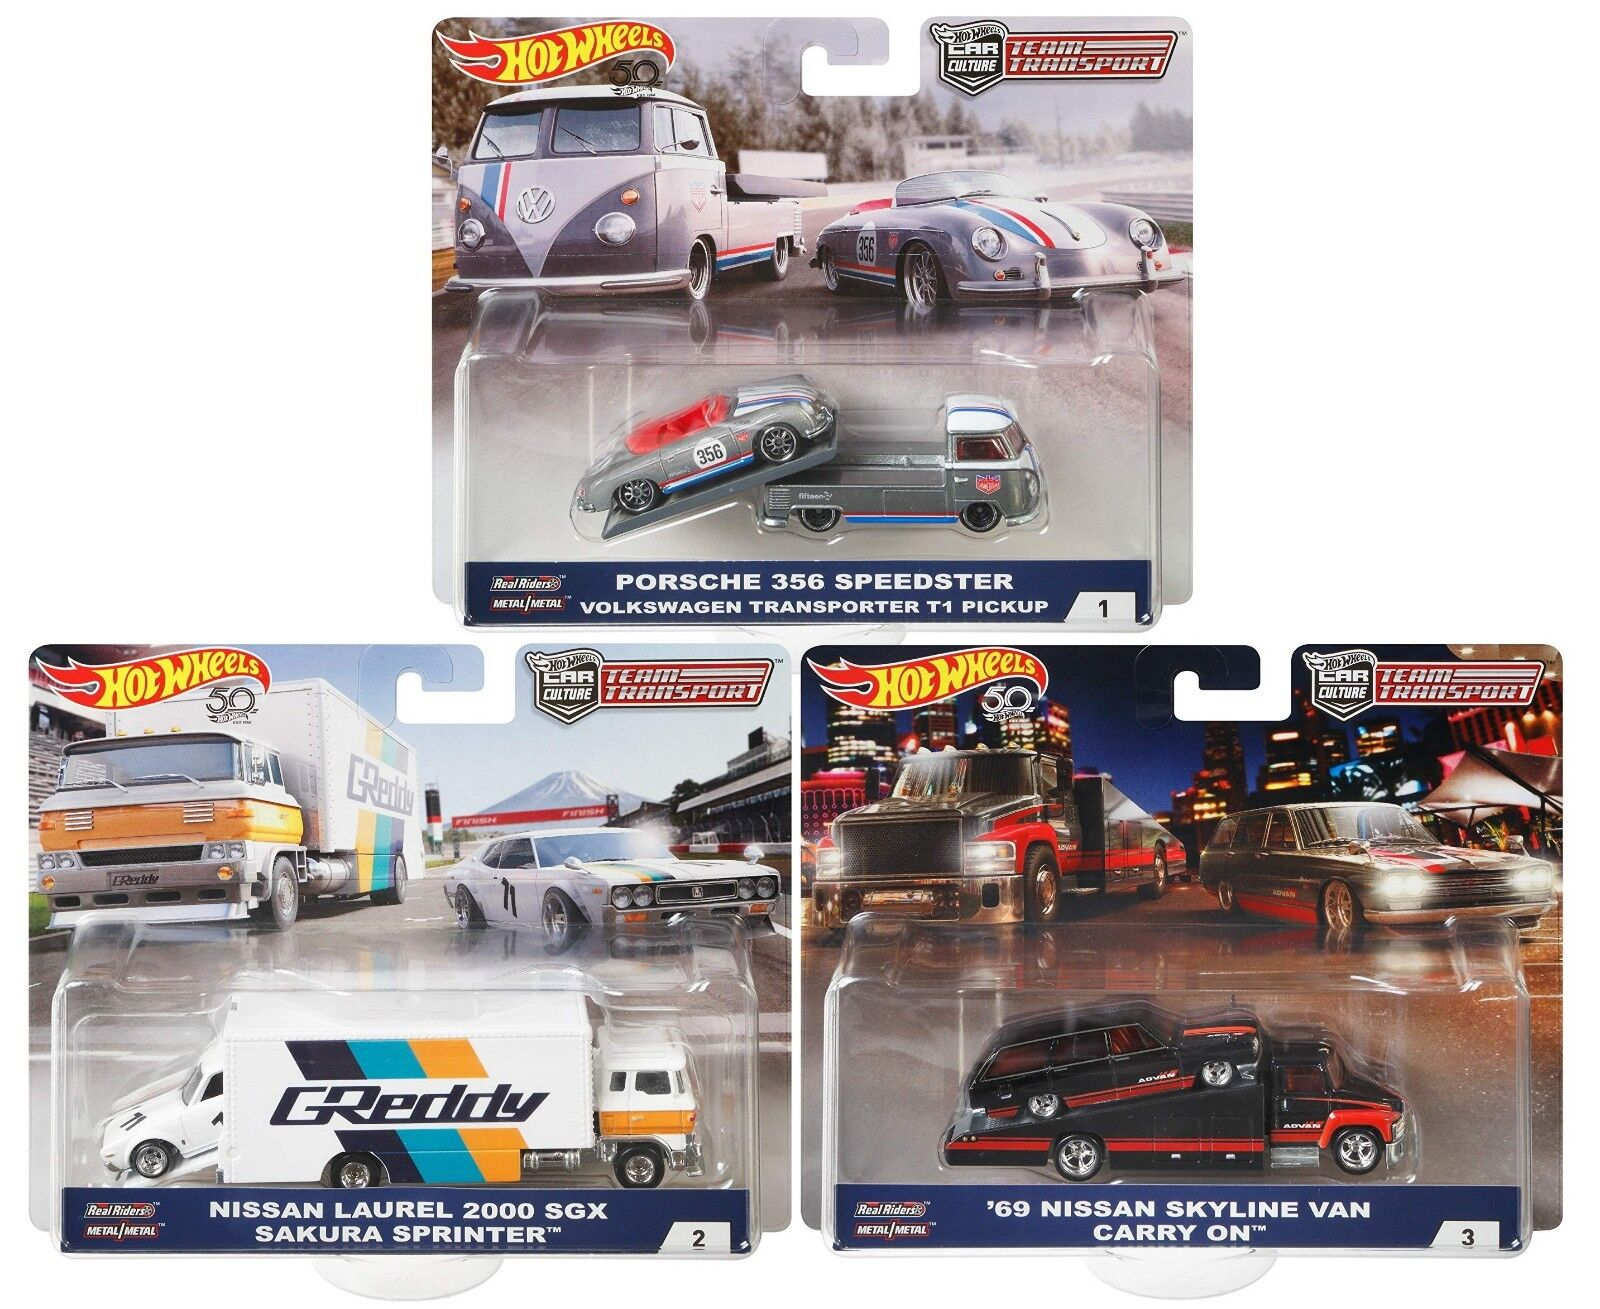 2018 Hot Wheels 50th Anniversary Car Culture Team Transport Set of 3 1/64 Scale